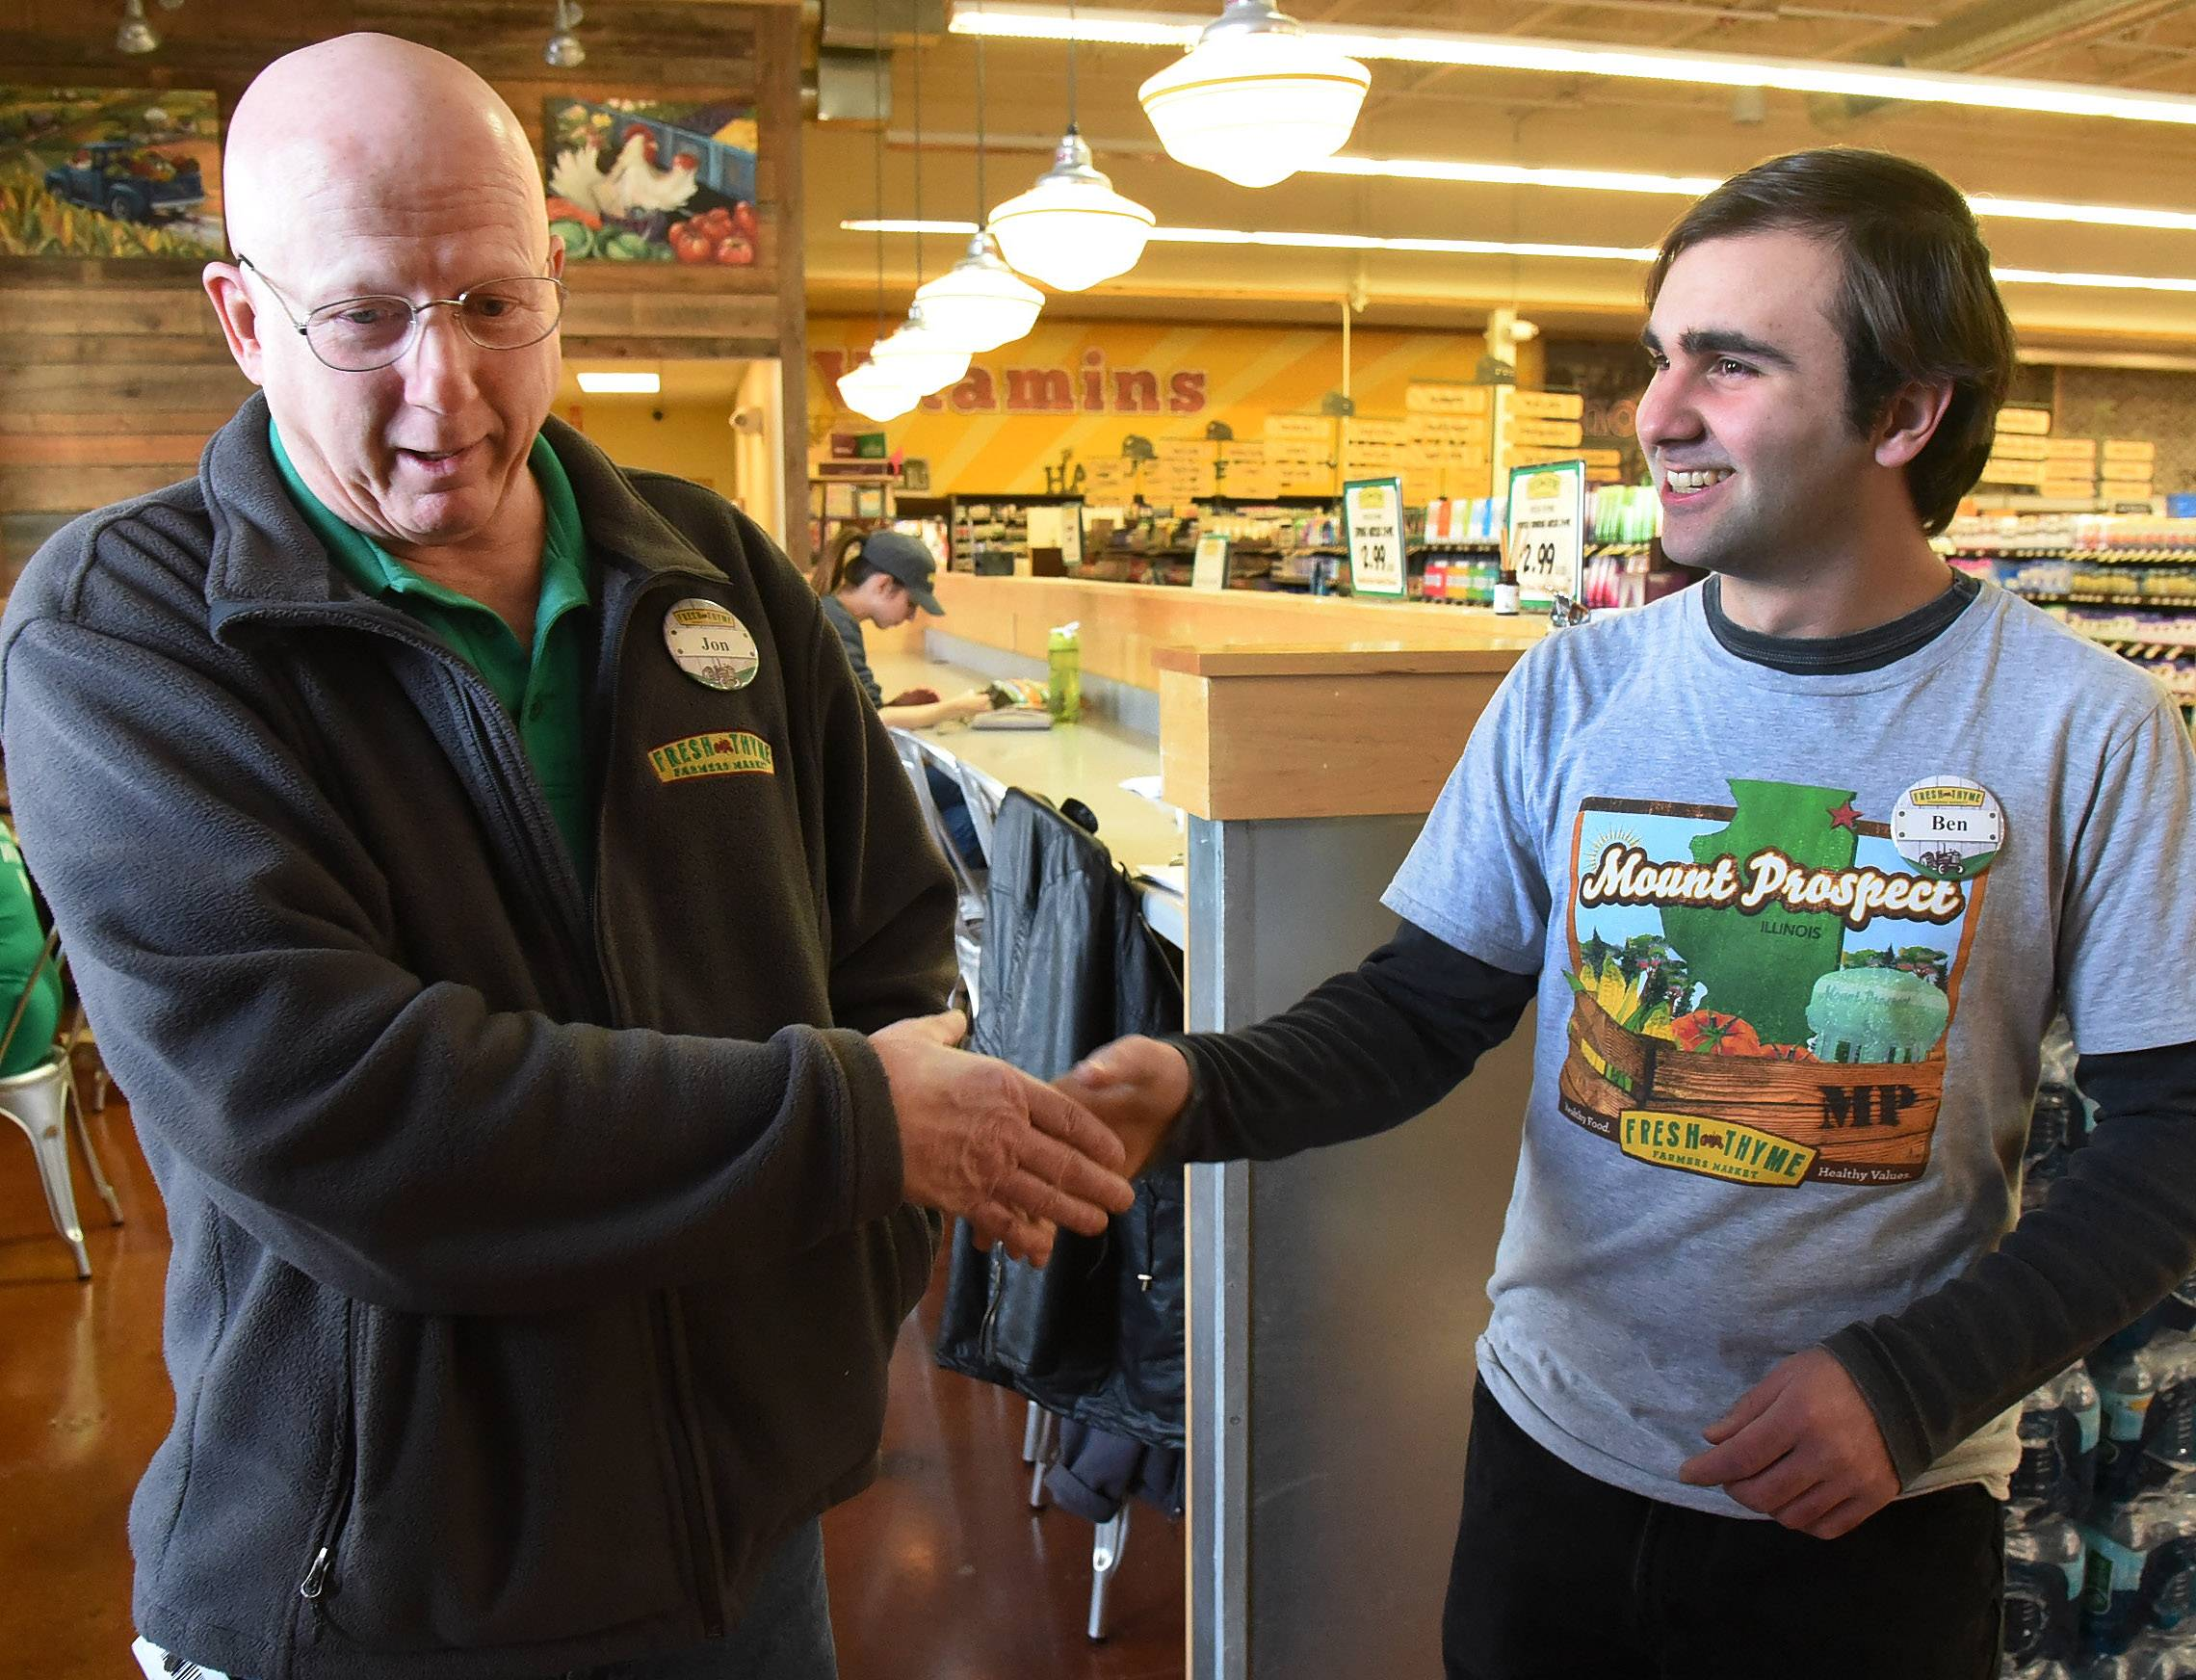 Not only did Ben Nicholas, right, learn social skills through his part-time job at Fresh Thyme Farmers Market in Mount Prospect, the Mount Prospect man was an excellent and happy worker, says store director Jon Little, left. The grocery is one of several suburban businesses that hires students from the North Suburban Special Education Organization.